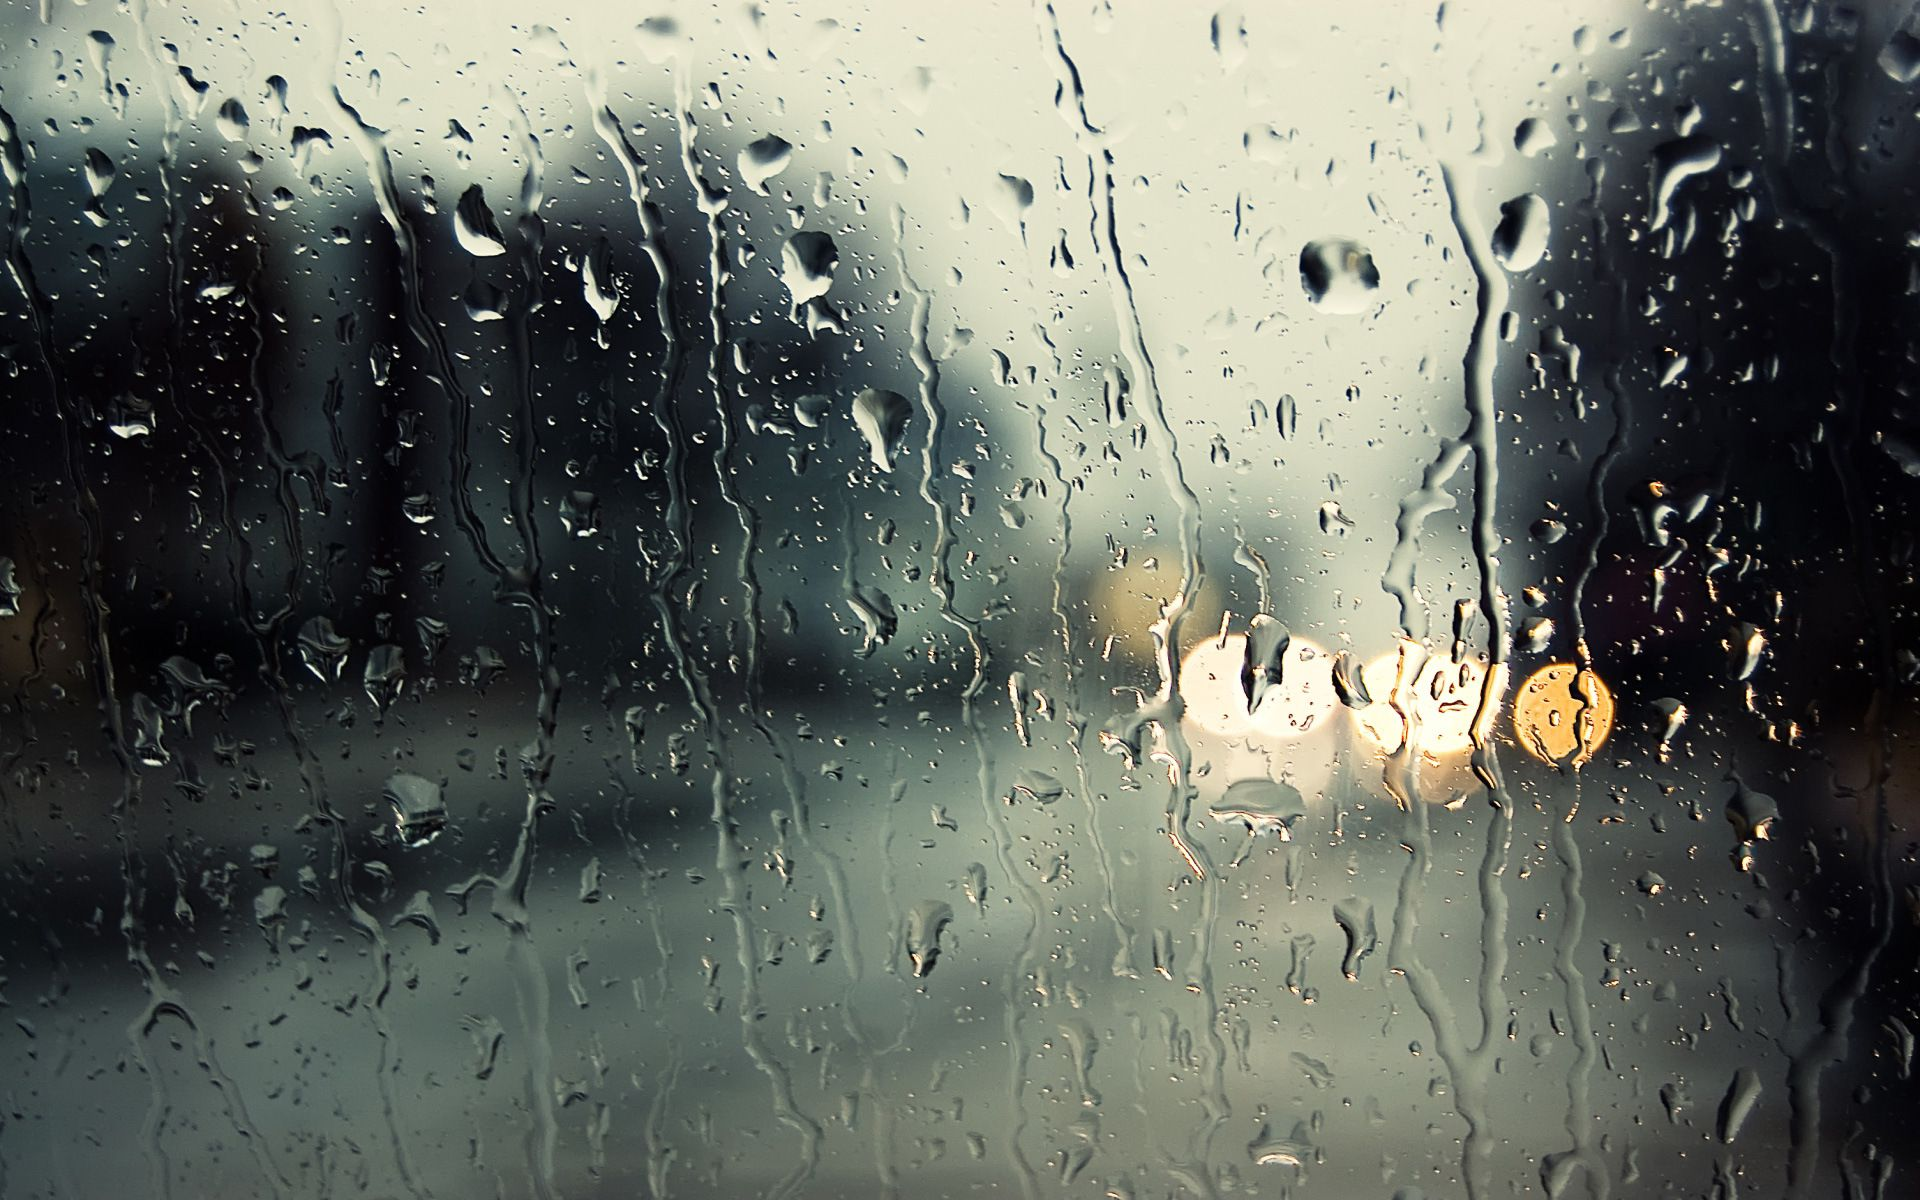 Parched Cape Town Rejoices Downpour For The First Time In Days Rainy Day Wallpaper Rainy Day Pictures Abstract Images